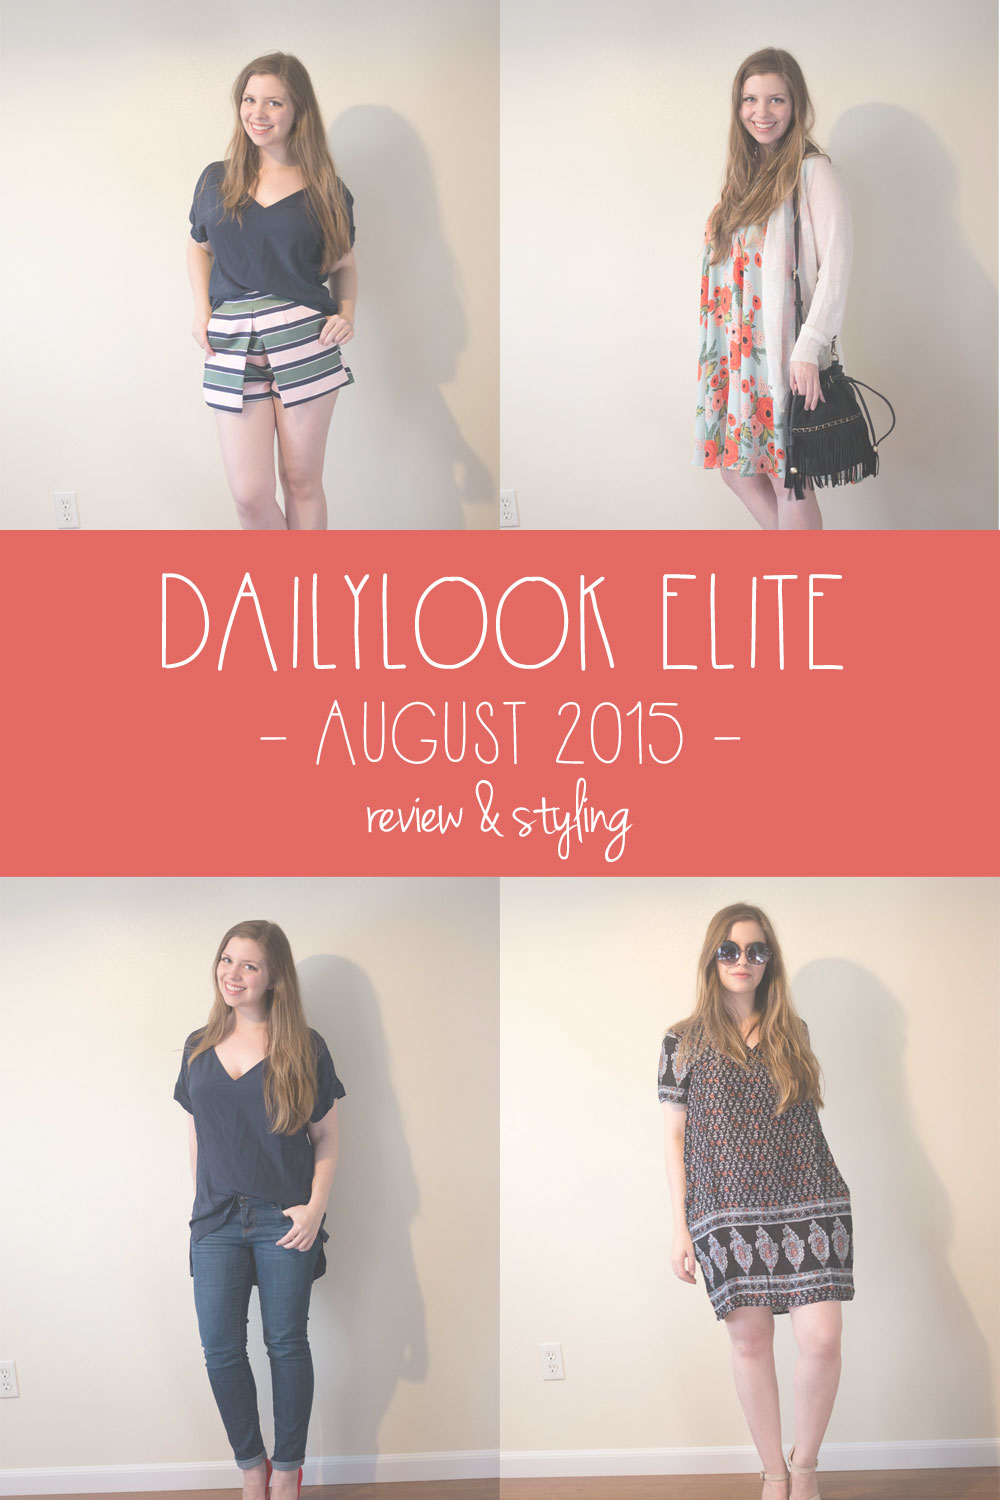 Dailylook Elite August 2015 Review & Styling // hellorigby seattle fashion blog